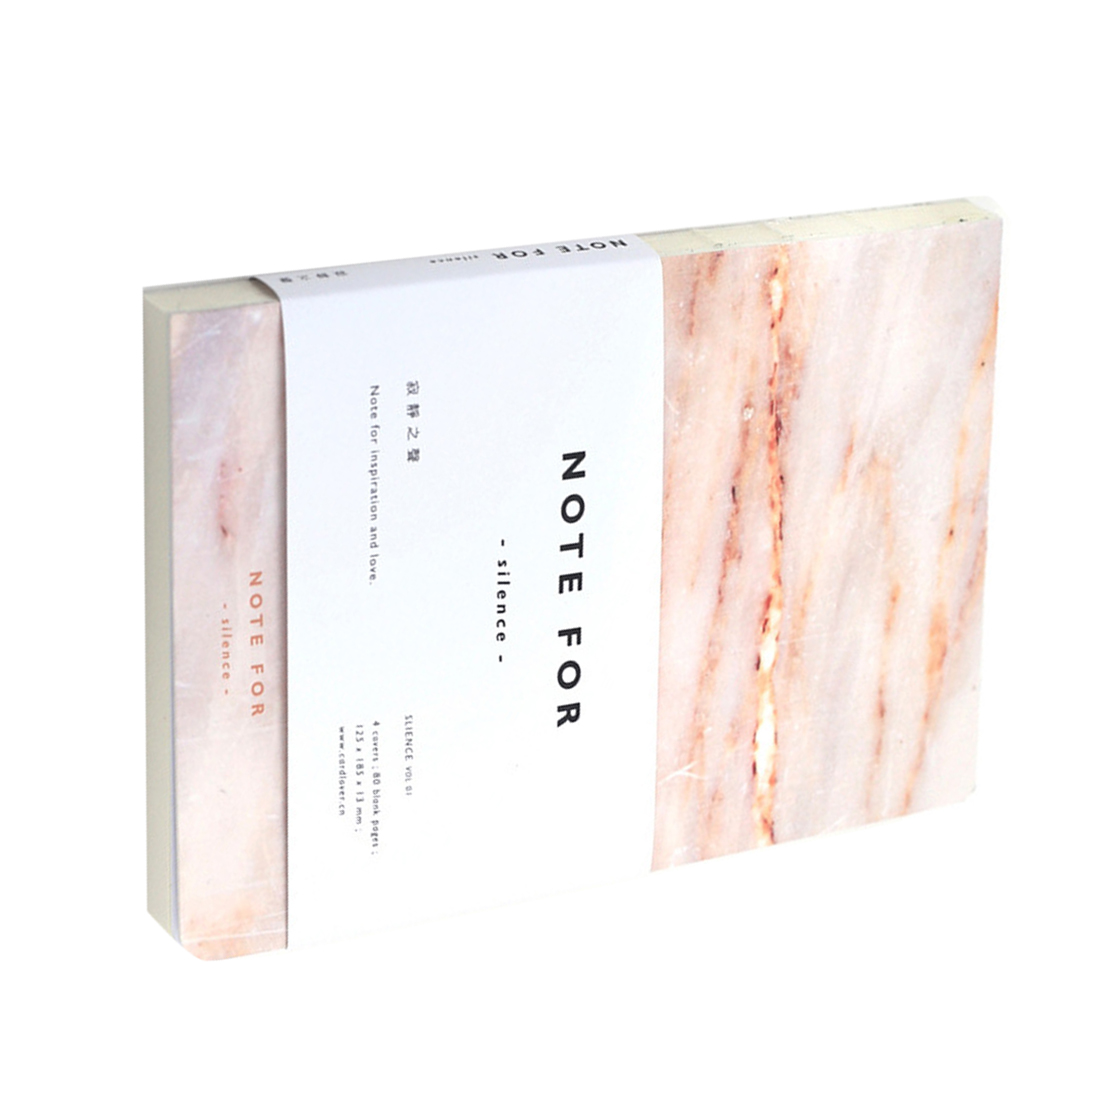 New Fashion Note For Silence Sketchbook Diary Drawing 80 Sheets Creative School Notebook Marble Pattern Office